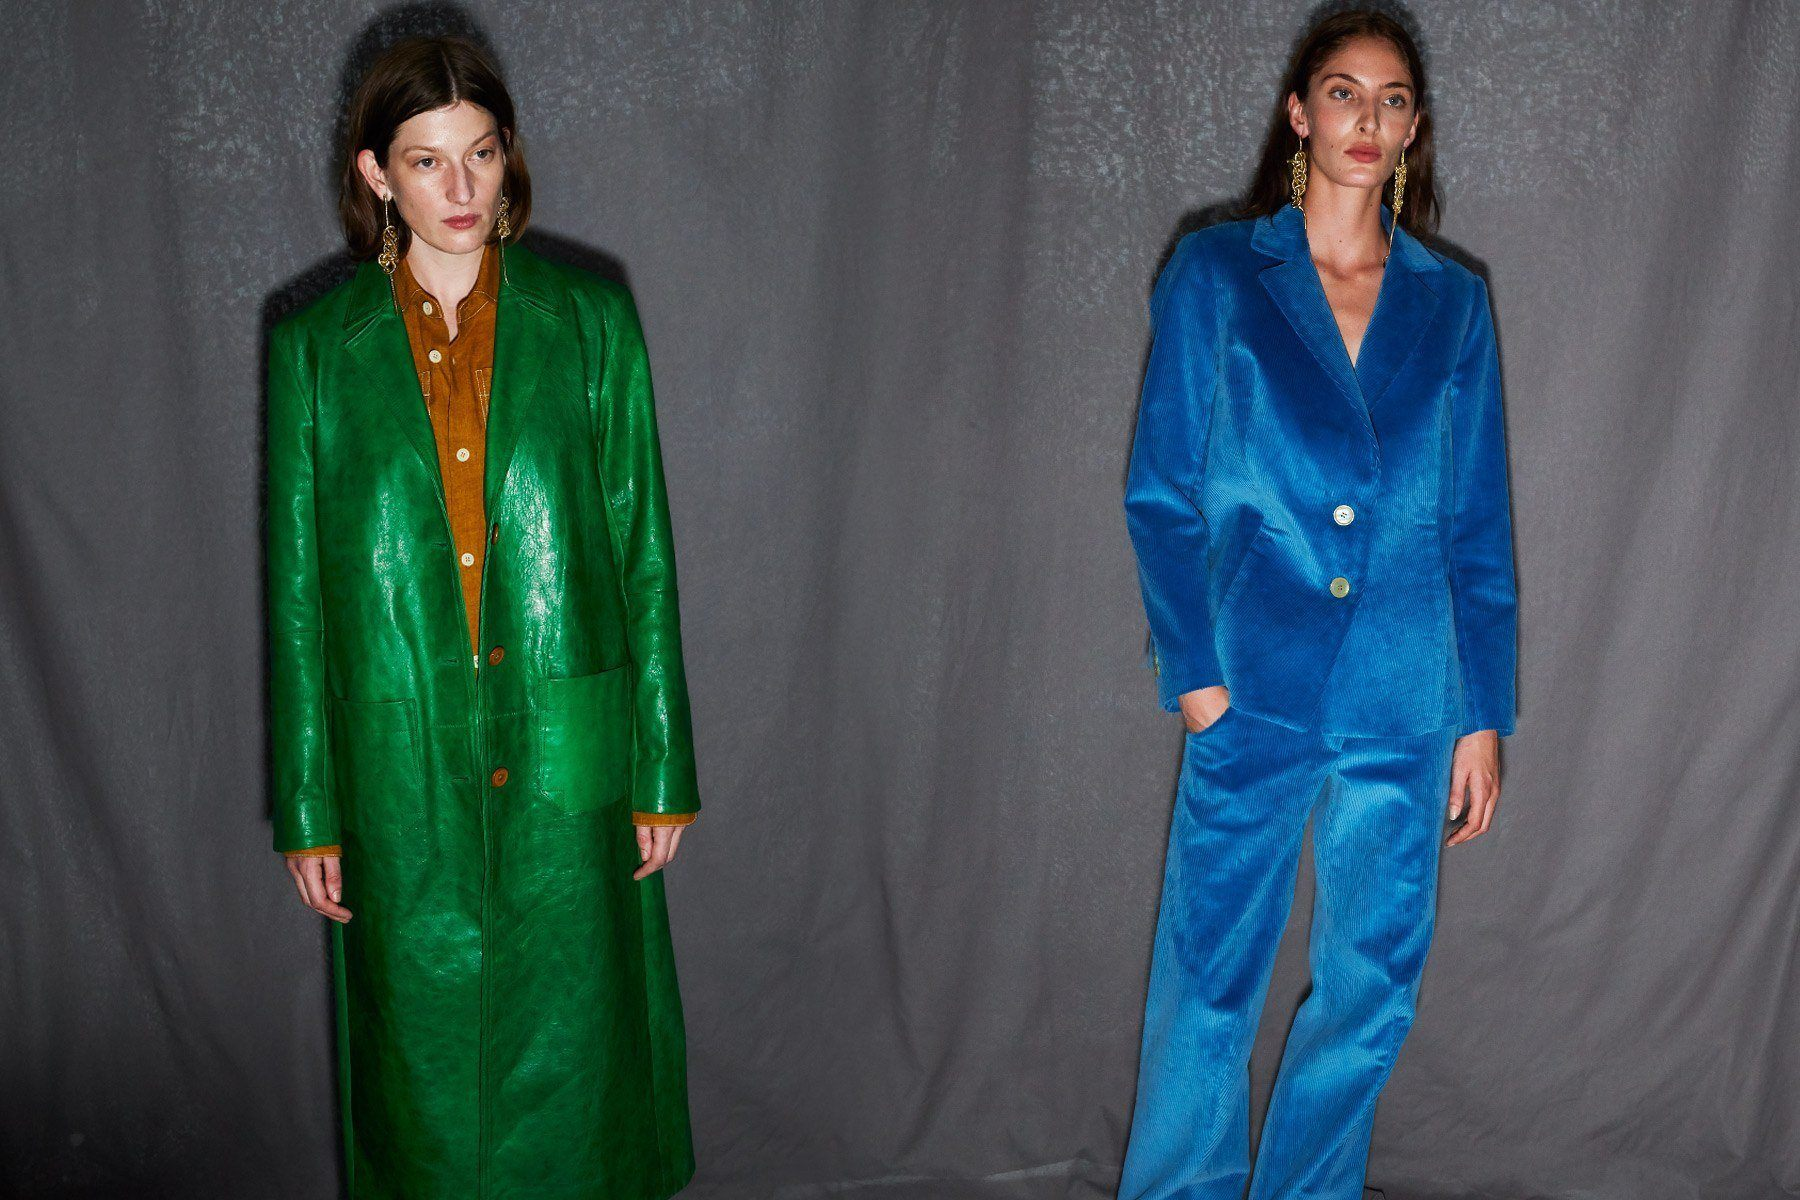 Colorful looks from the Linder Spring/Summer 2019 collection, photographed by Alexander Thompson for Ponyboy magazine.